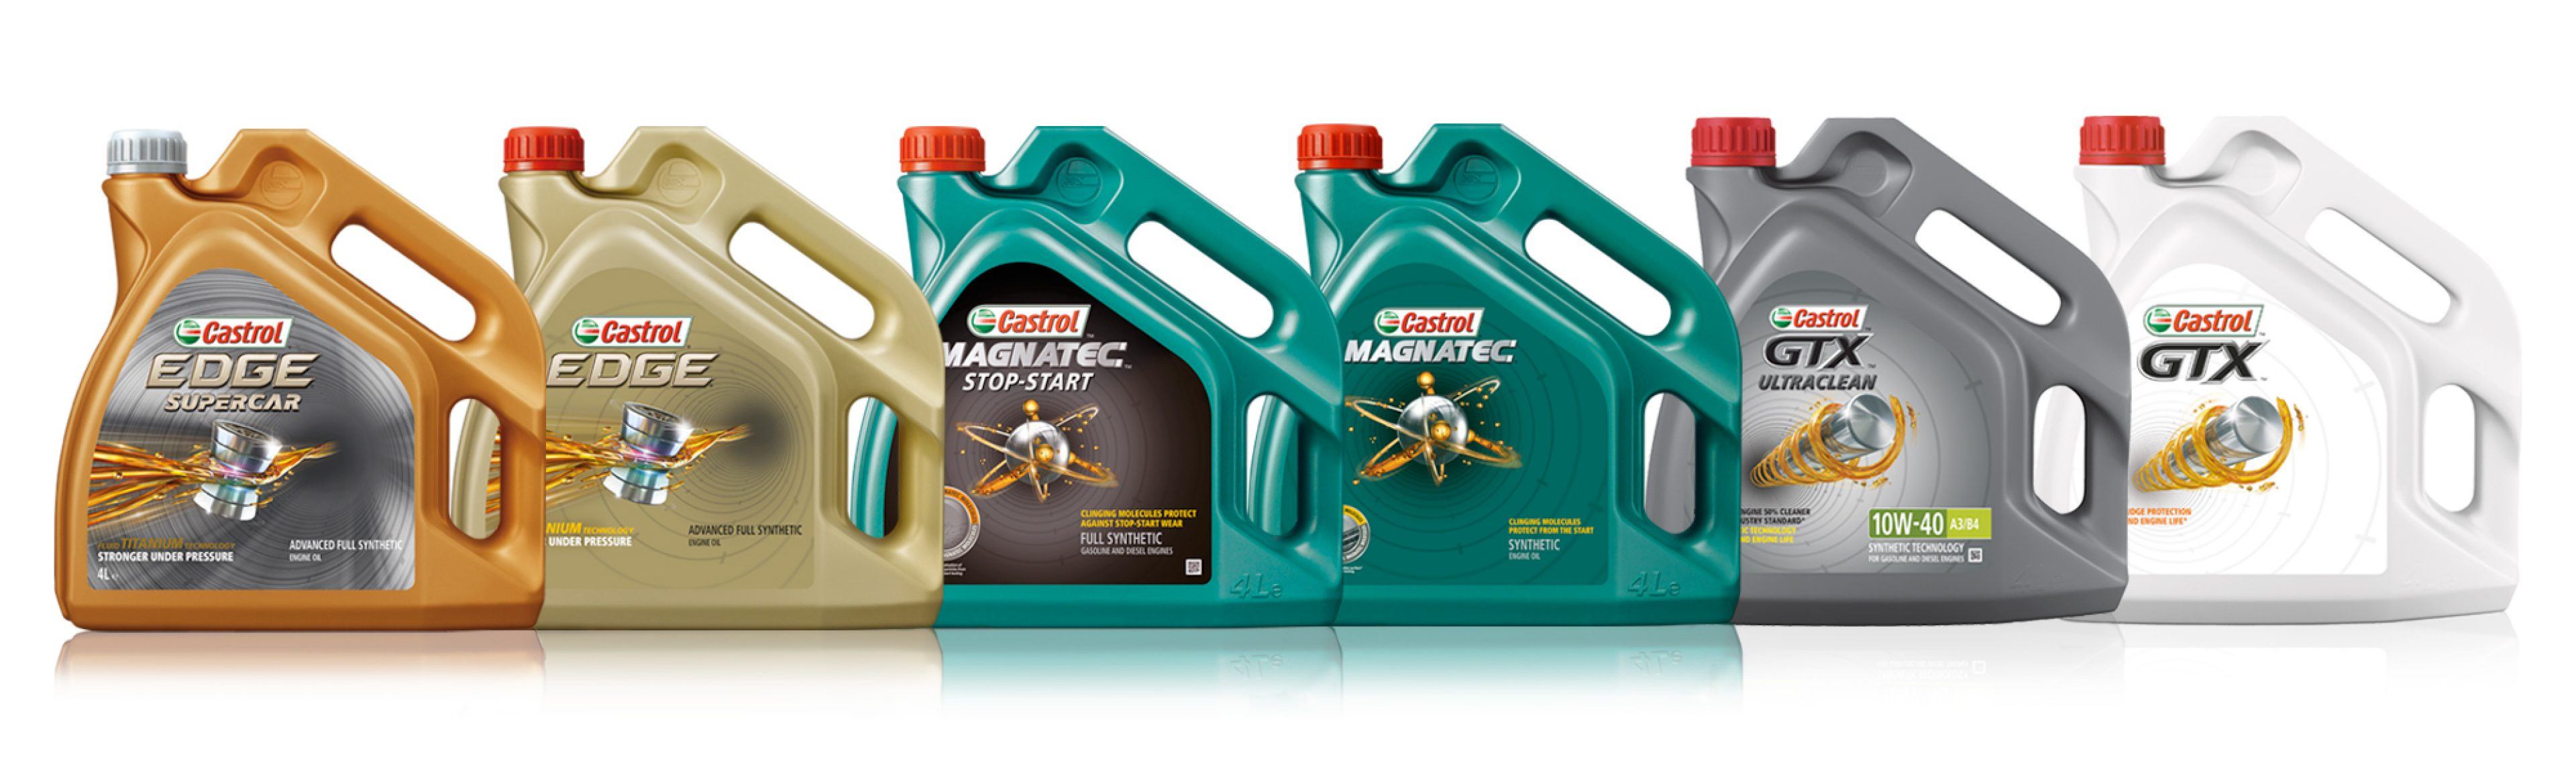 Castrol Engine Oil Brands